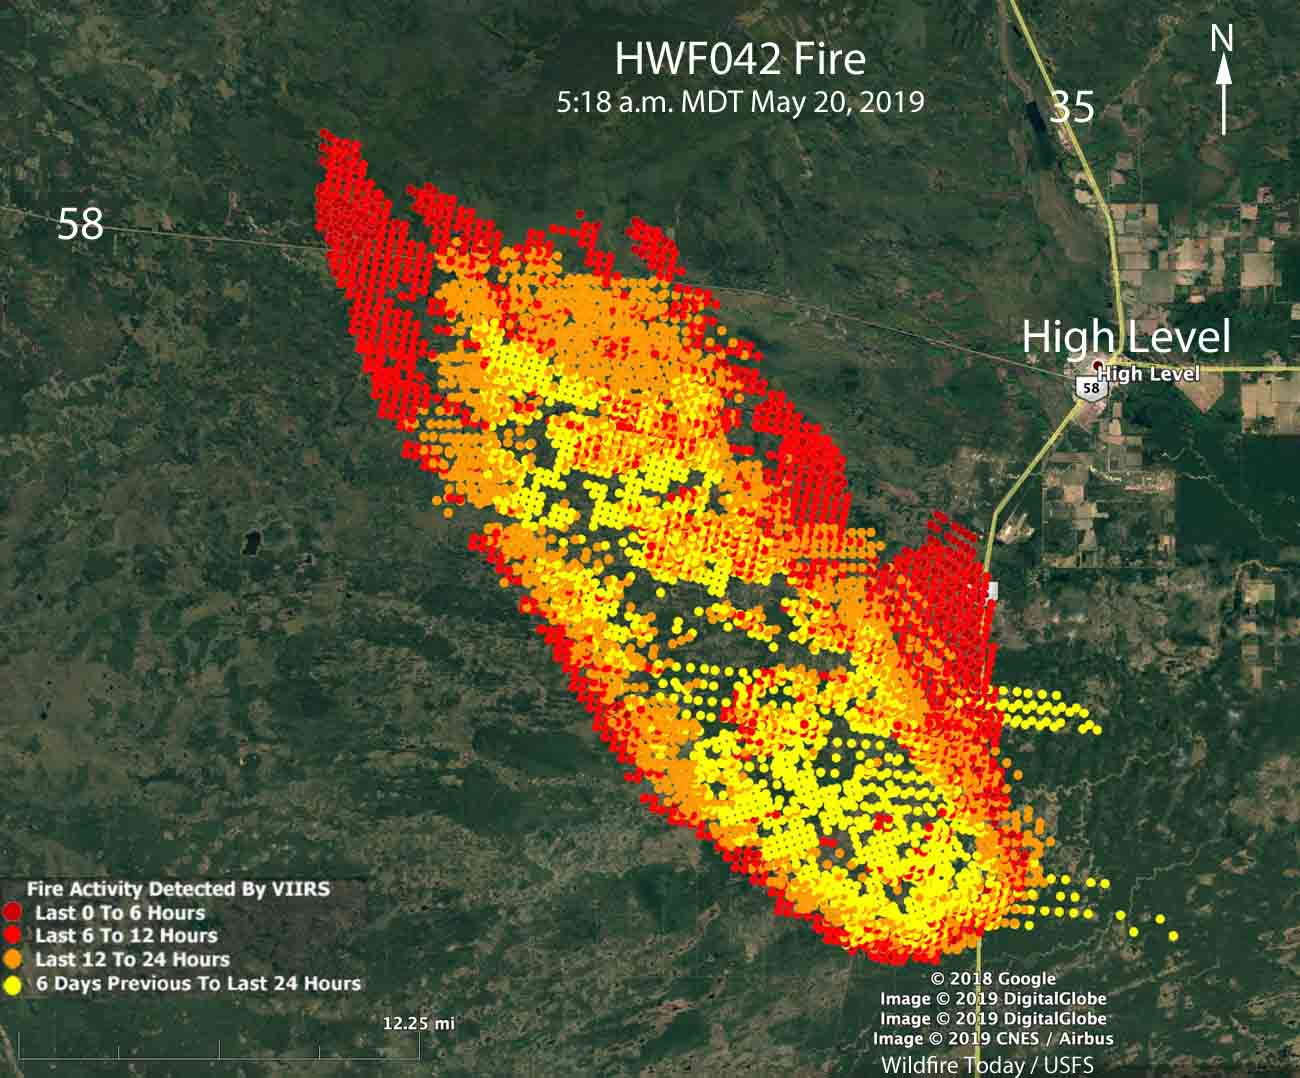 Map of the Chuckegg Creek HWF042 wildfire